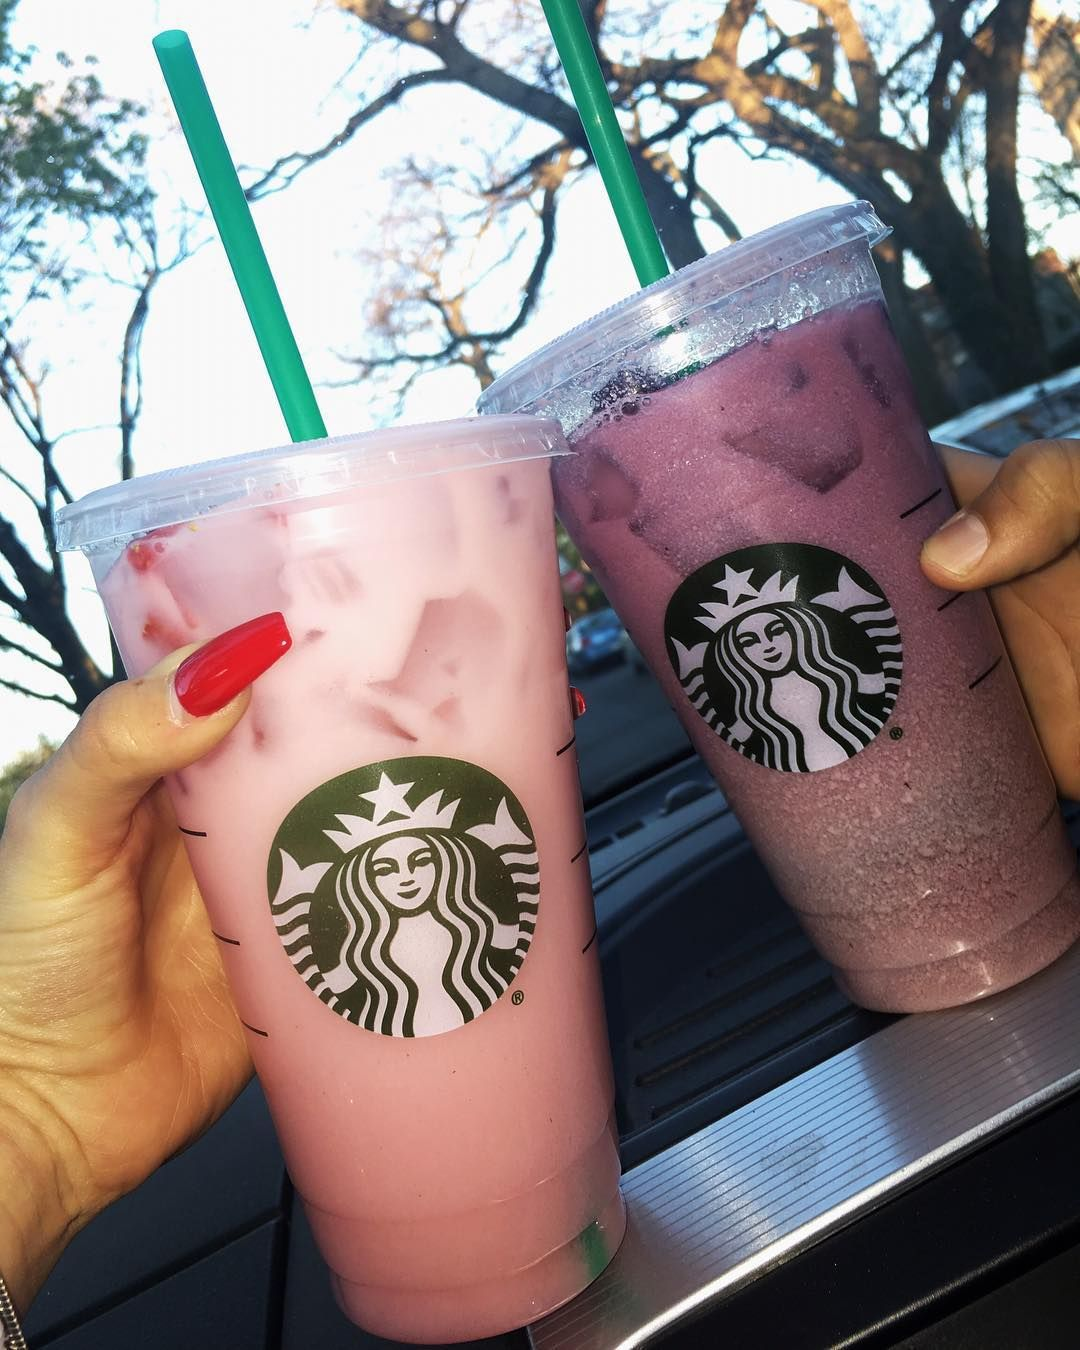 Pin by jaedyn emerson on meals sweets starbucks drinks